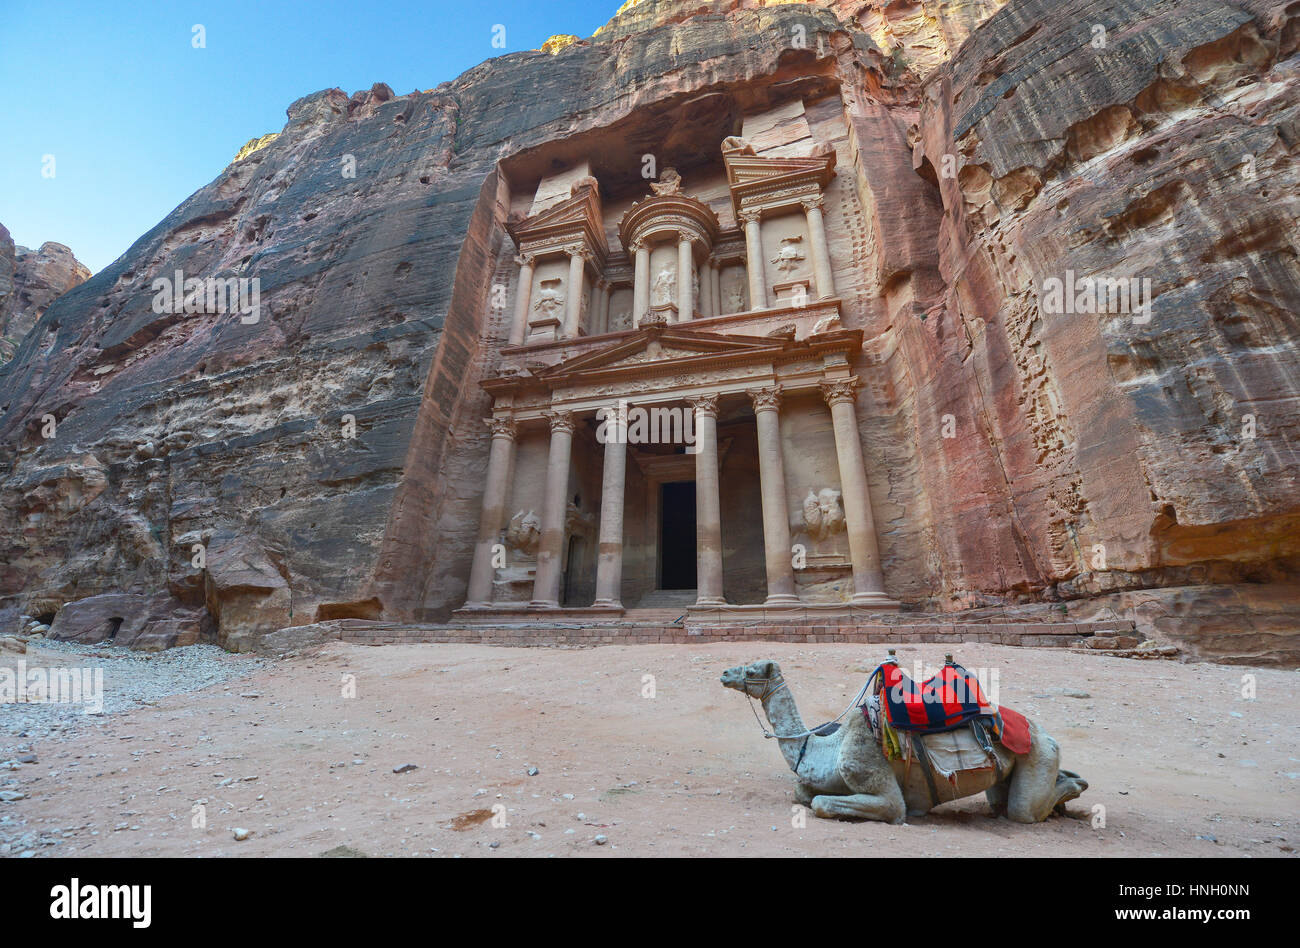 Al Khazneh in the ancient city of Petra, Jordan. The Treasury. Petra has led to its designation as a UNESCO World - Stock Image